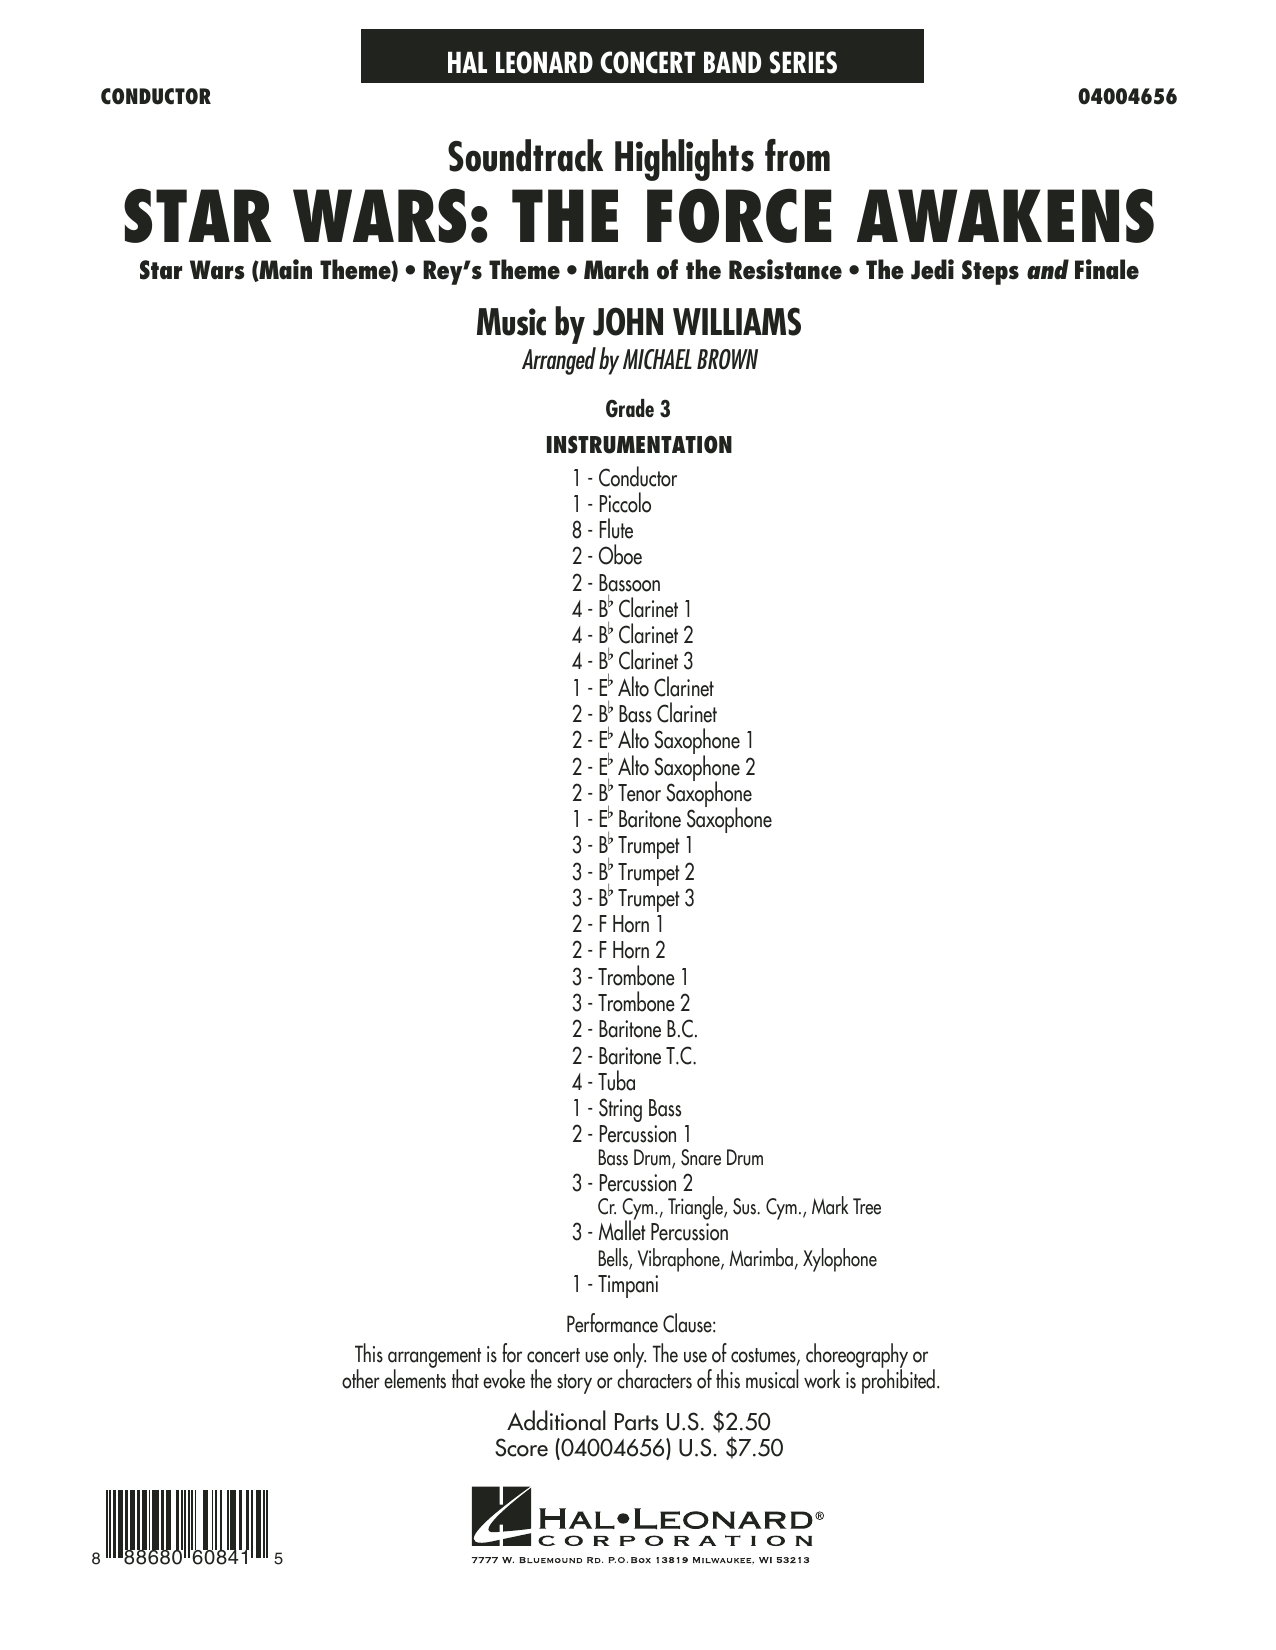 Michael Brown Soundtrack Highlights from Star Wars: The Force Awakens - Conductor Score (Full Score) sheet music preview music notes and score for Concert Band including 24 page(s)